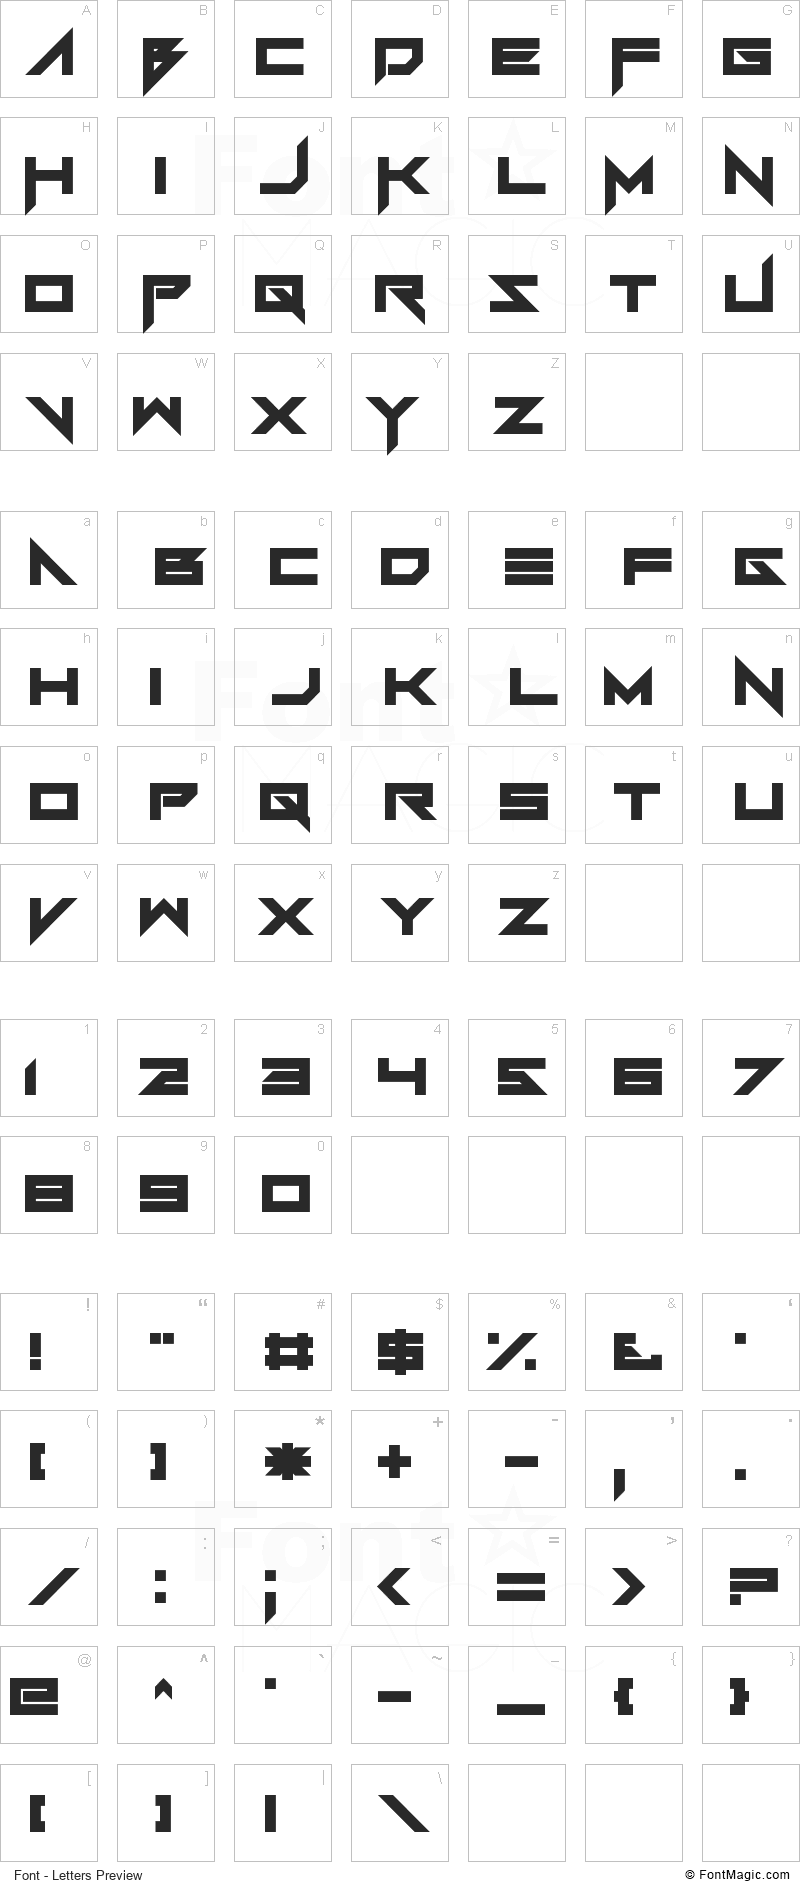 FoughtKnight Font - All Latters Preview Chart